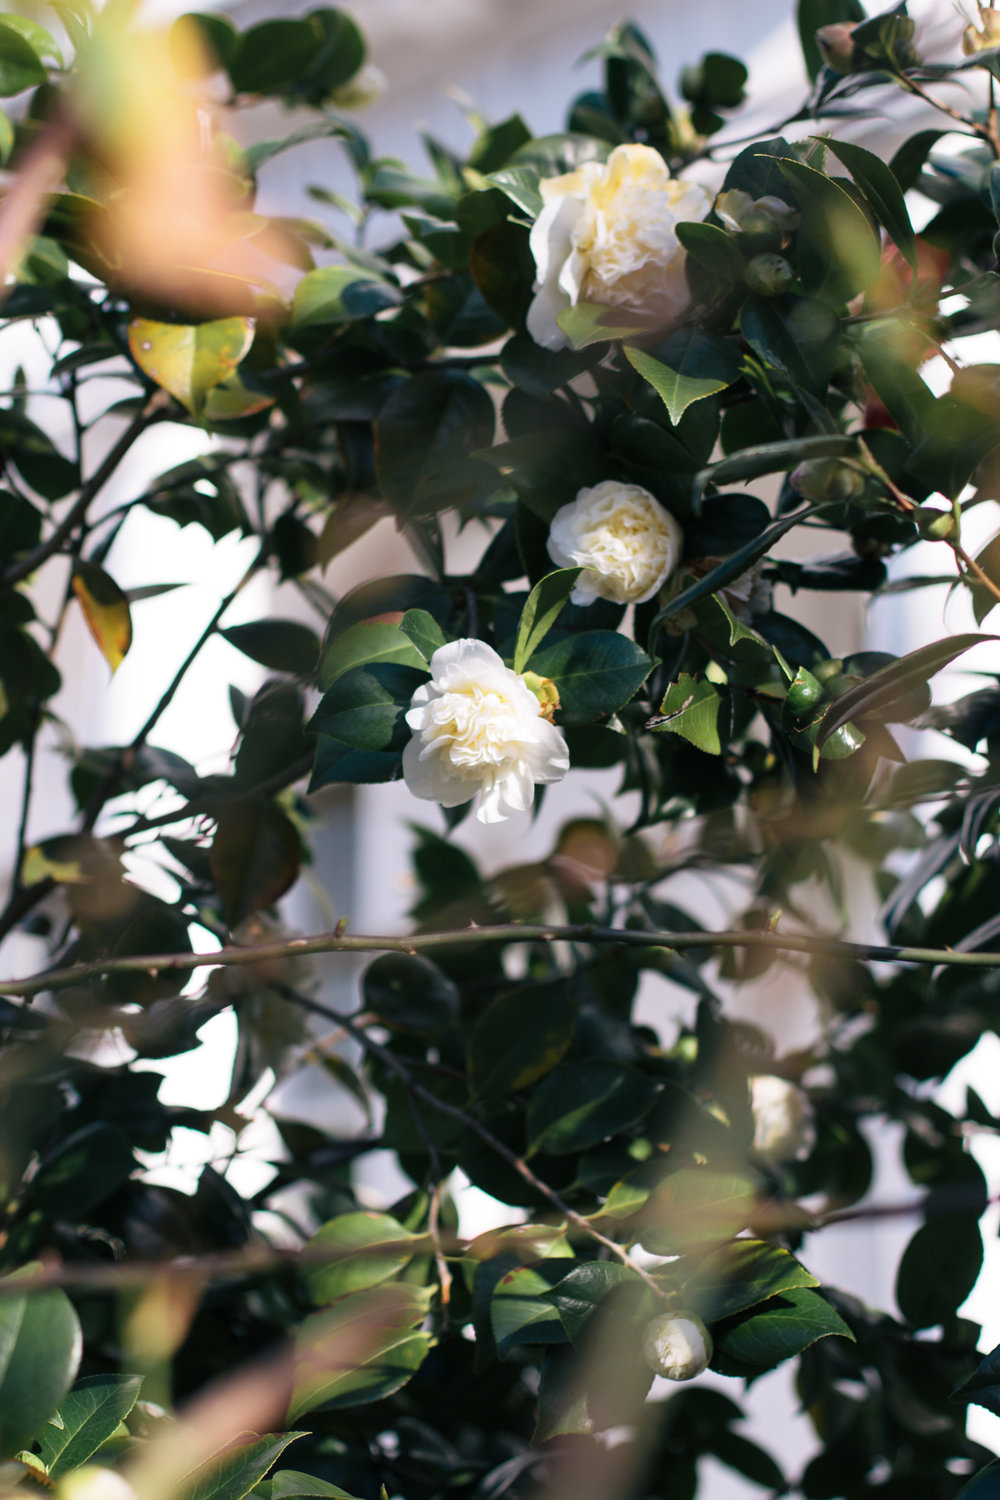 Is It Spring Yet? | White camellias blooming in front of a stucco townhouse in Kensington, West London | Sundays and Somedays